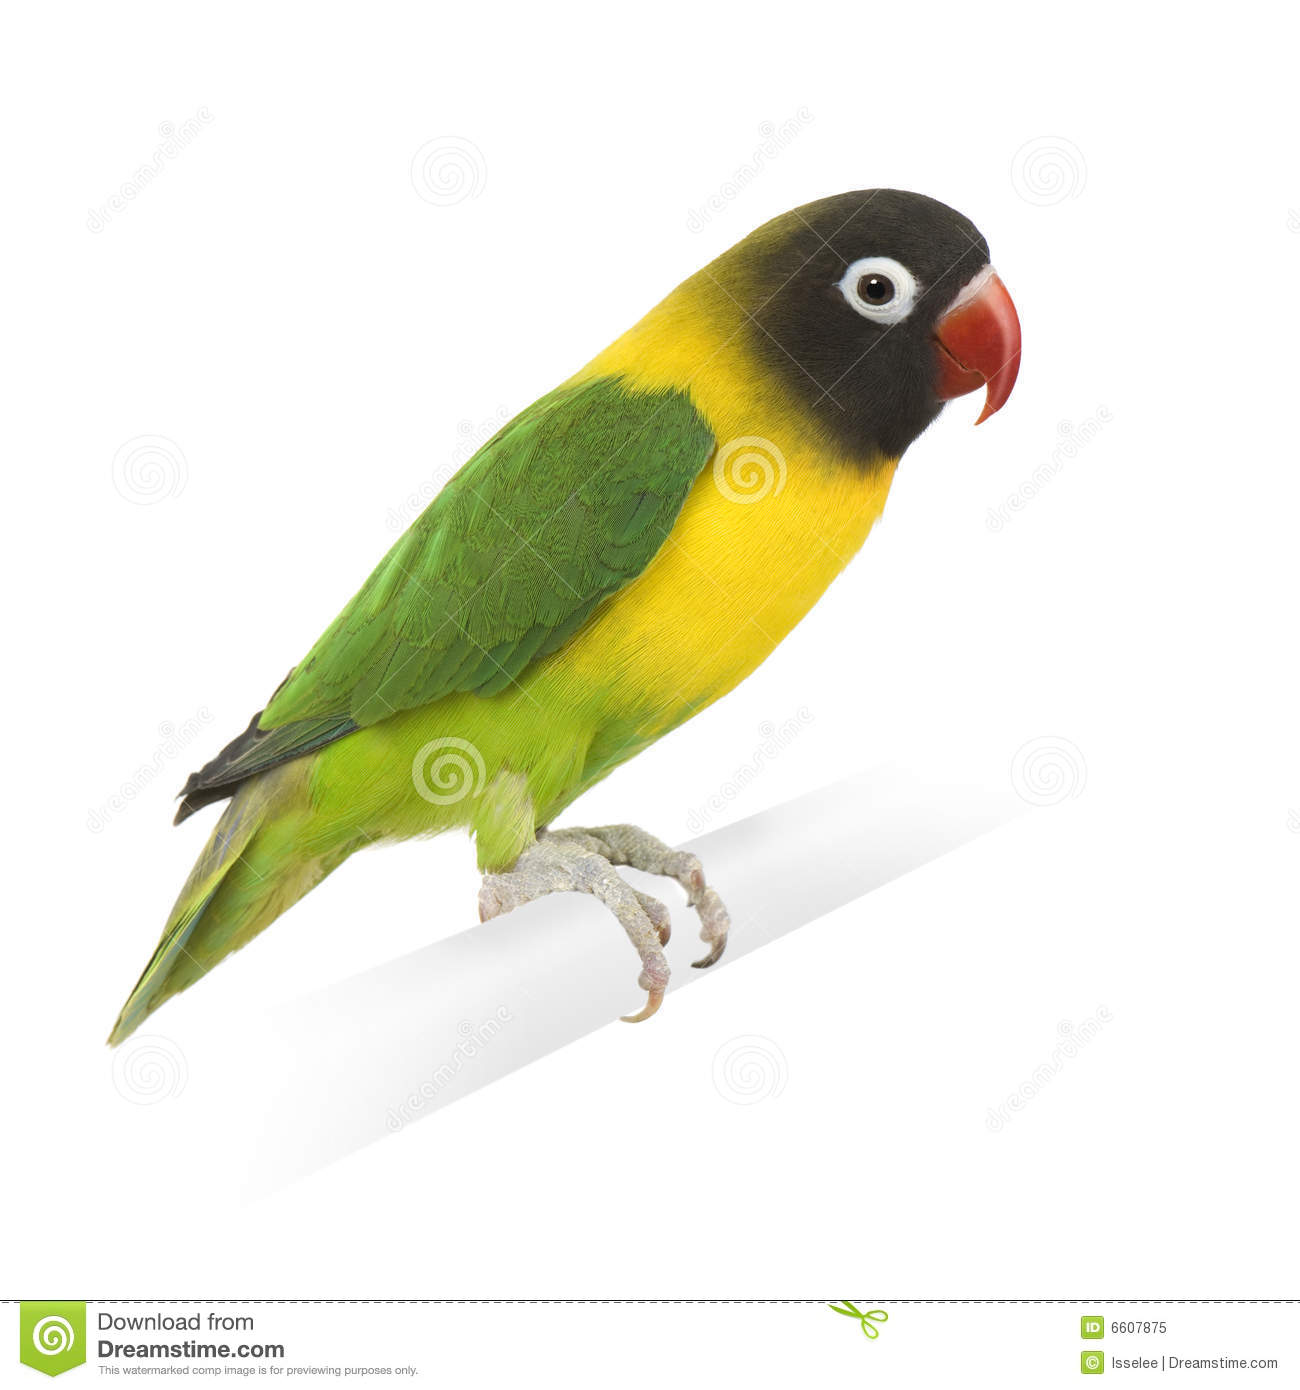 Agapornis Lovebird Personata Stock Photos, Images, & Pictures.